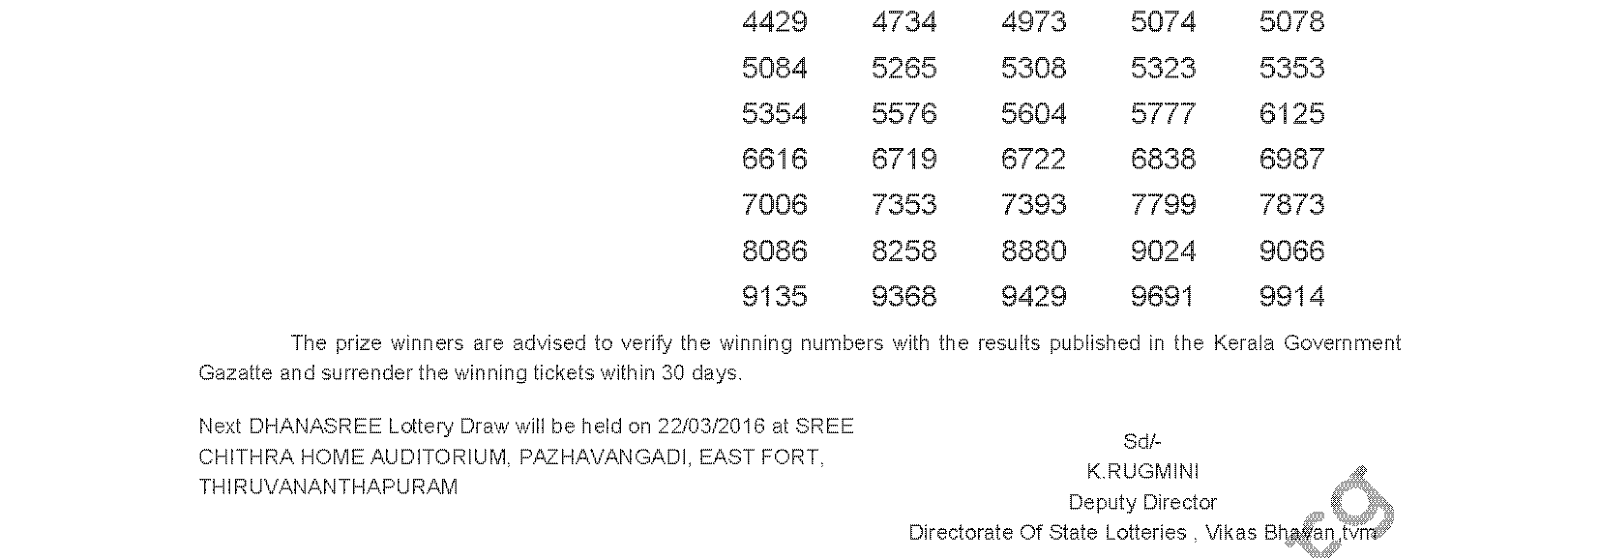 DHANASREE Lottery DS 228 Result 15-3-2016